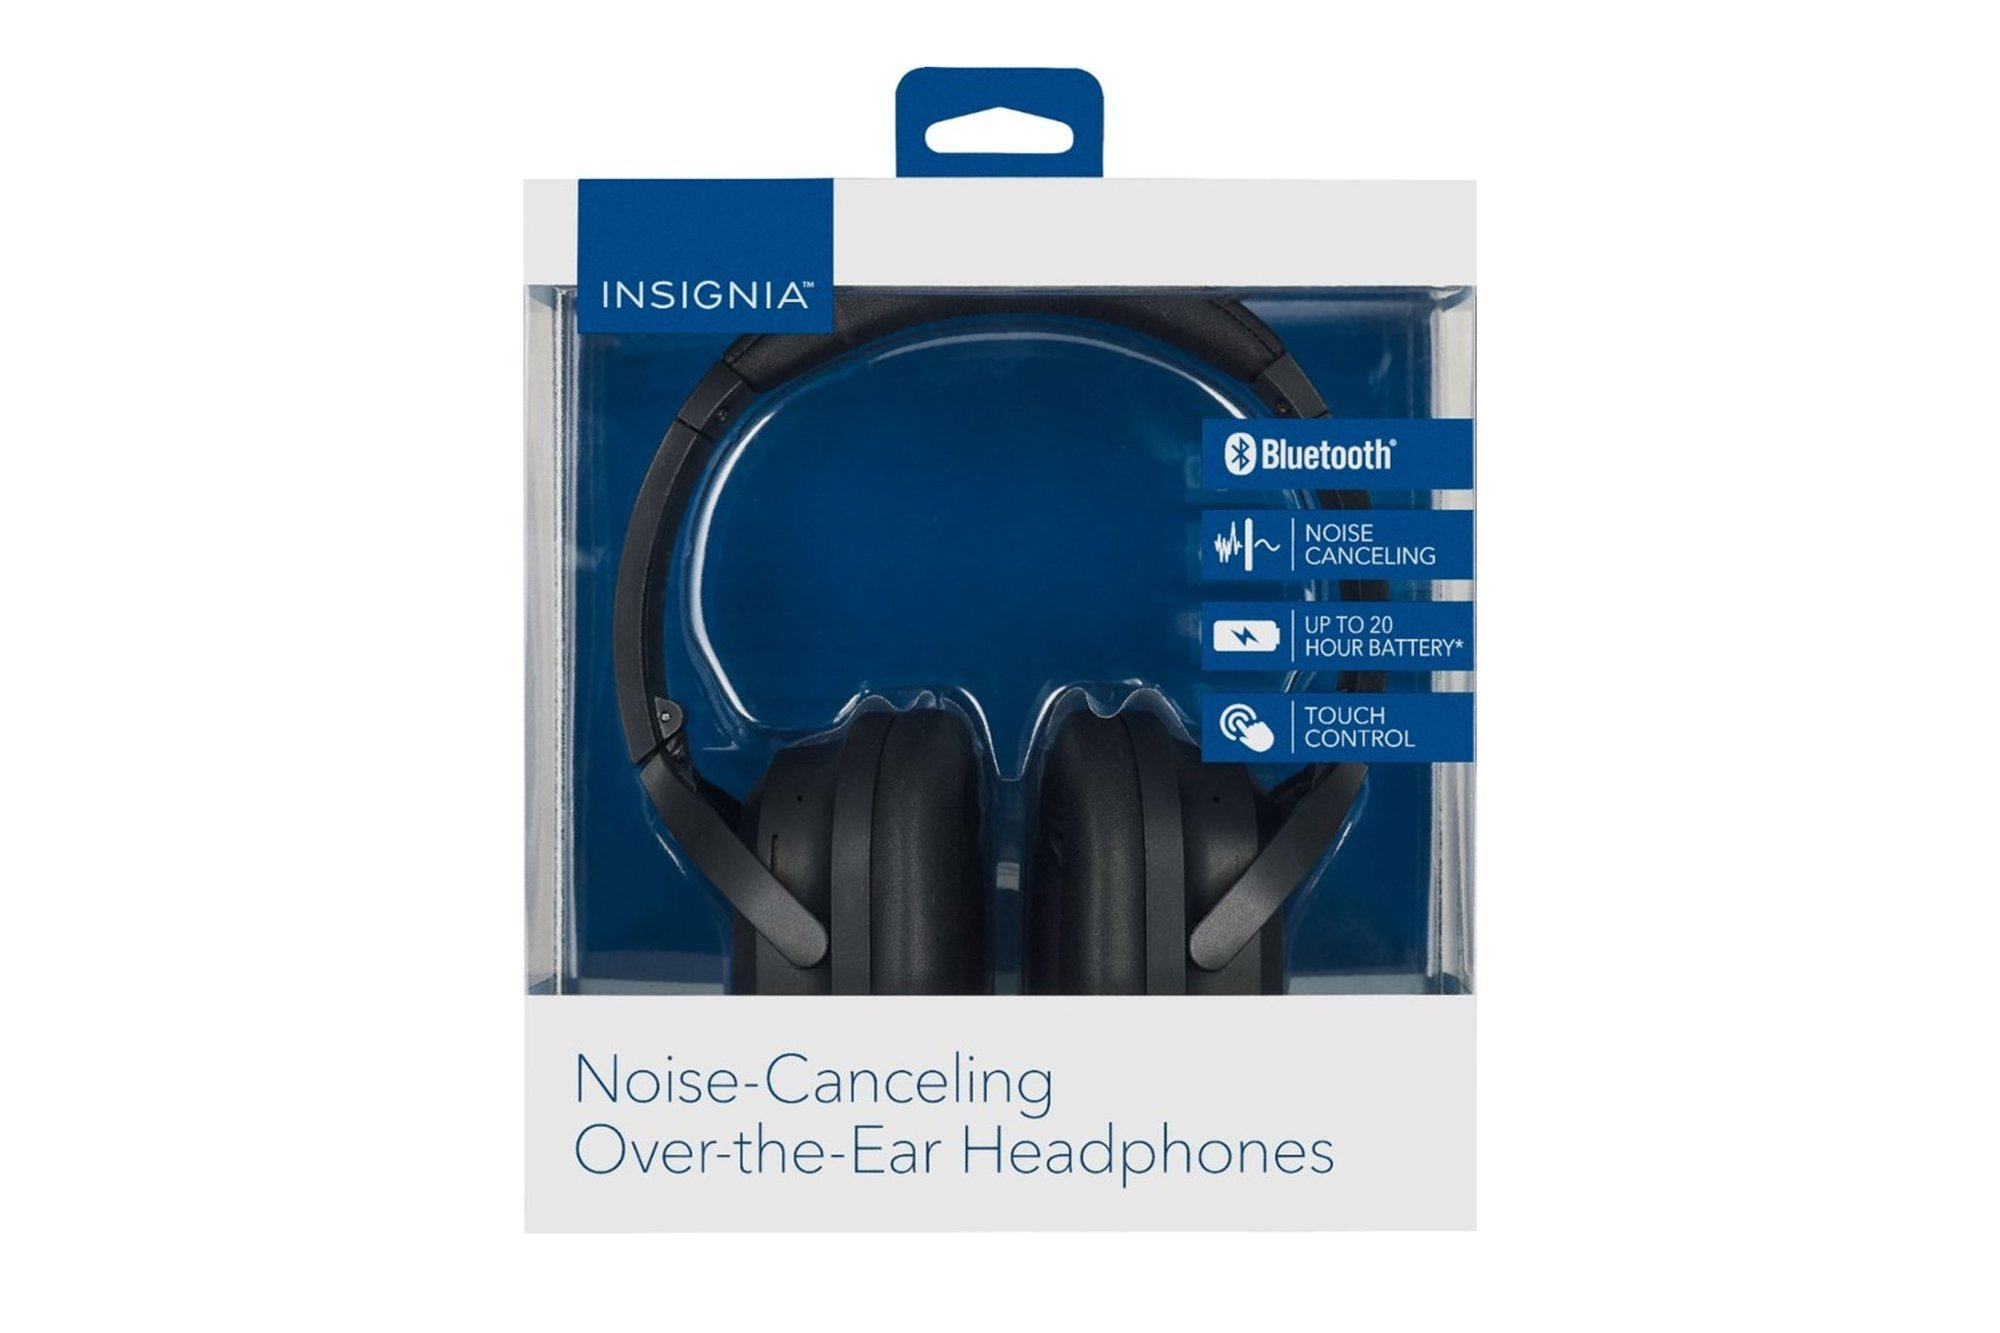 Insignia Wireless Noise Canceling Over-the-Ear Headphones Black